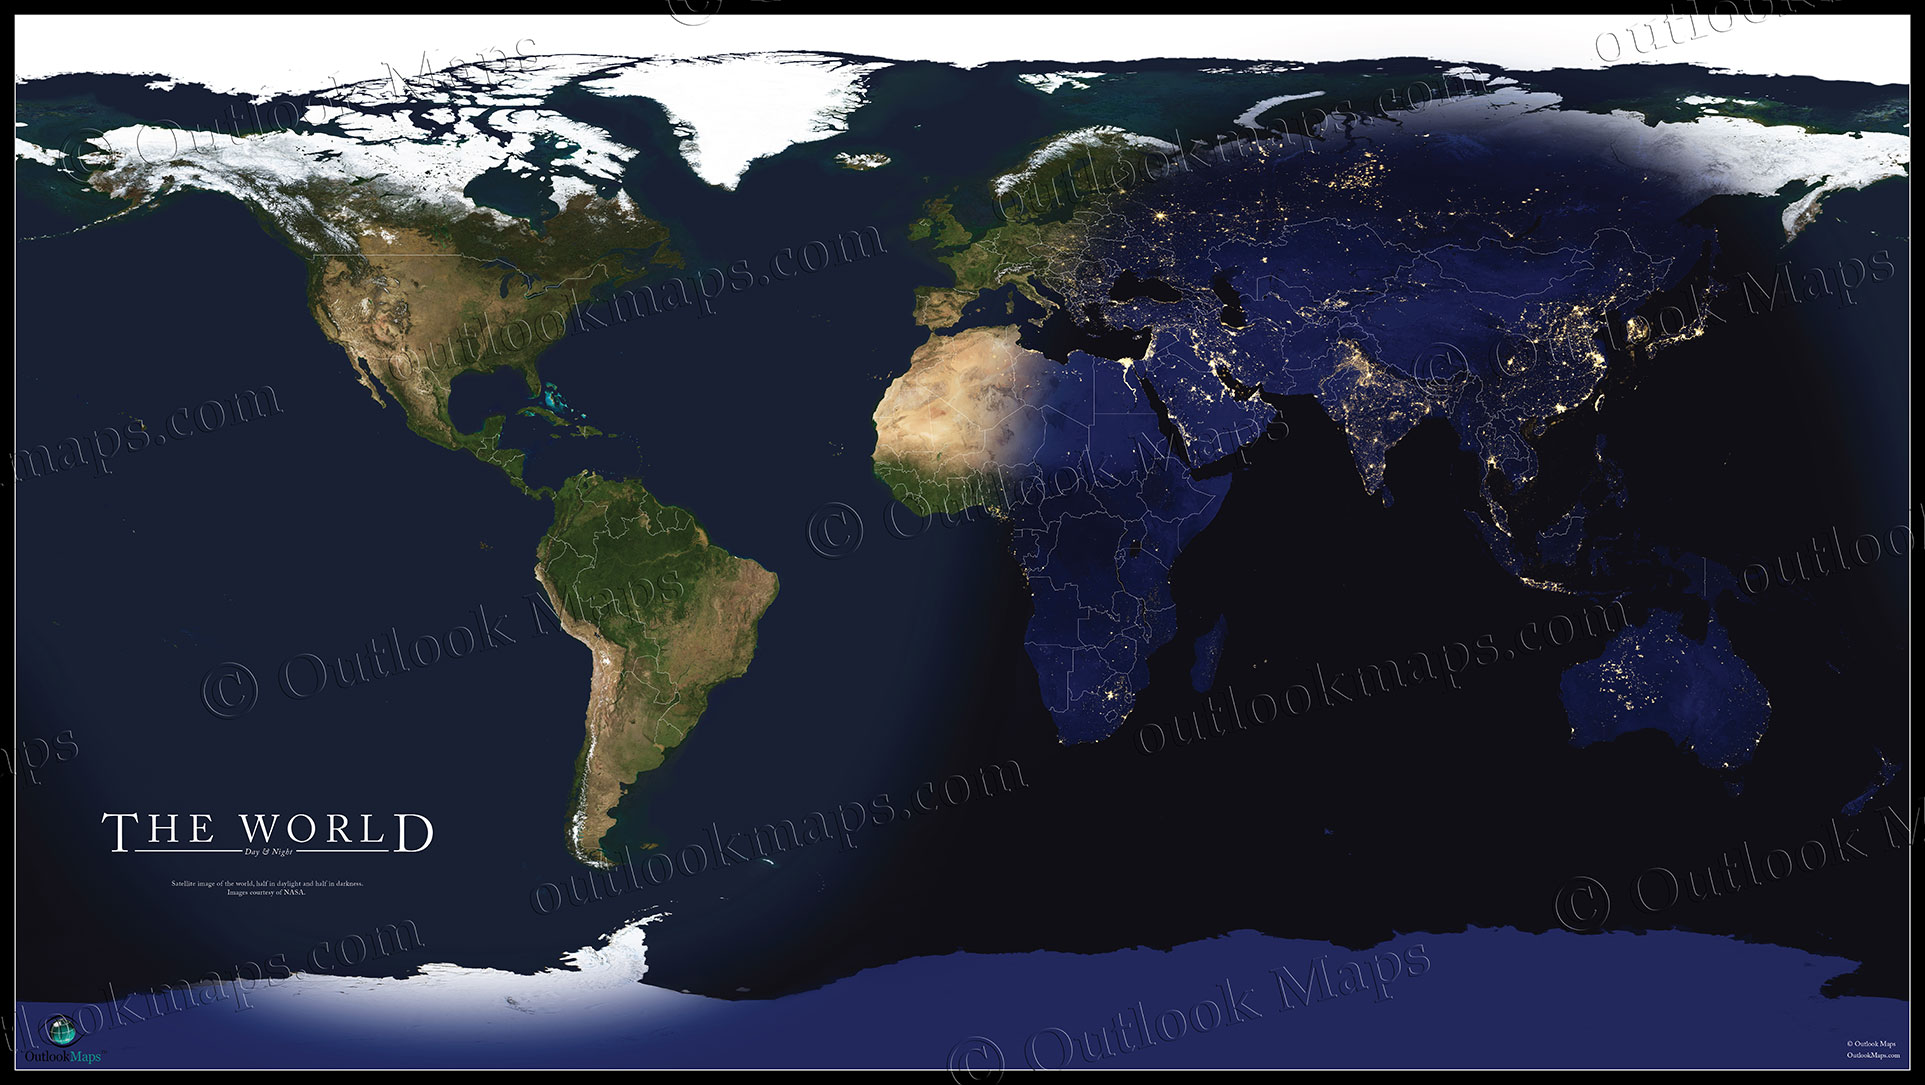 World Satellite Map Showing Daylight and Darkness World Satellite Wall Map Day vs  Night